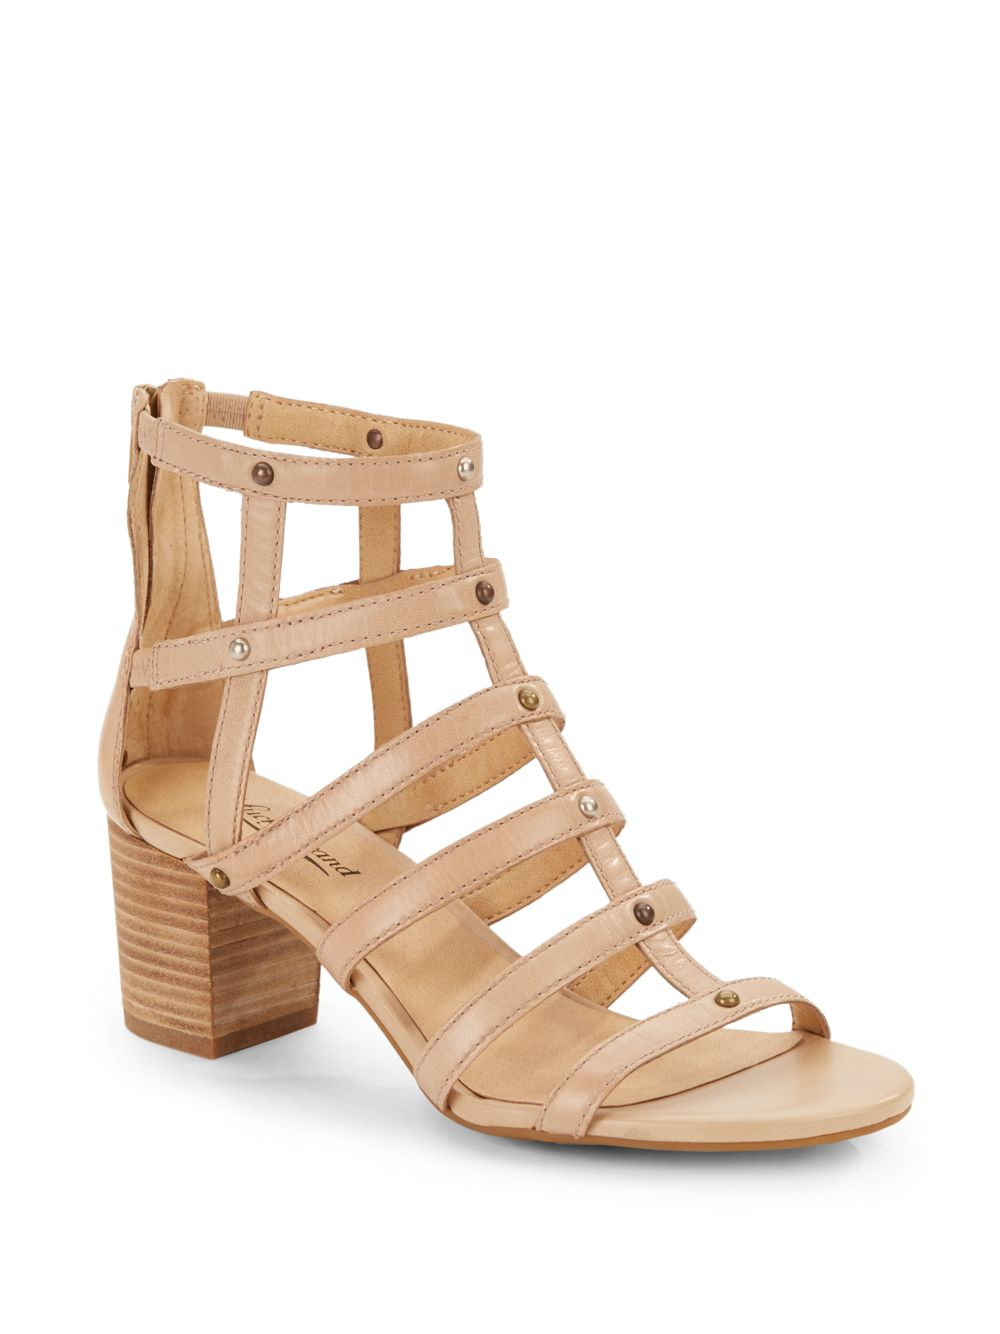 a016bcbe5b4 Lyst - Lucky Brand Lisbethe Cage Sandals in Natural